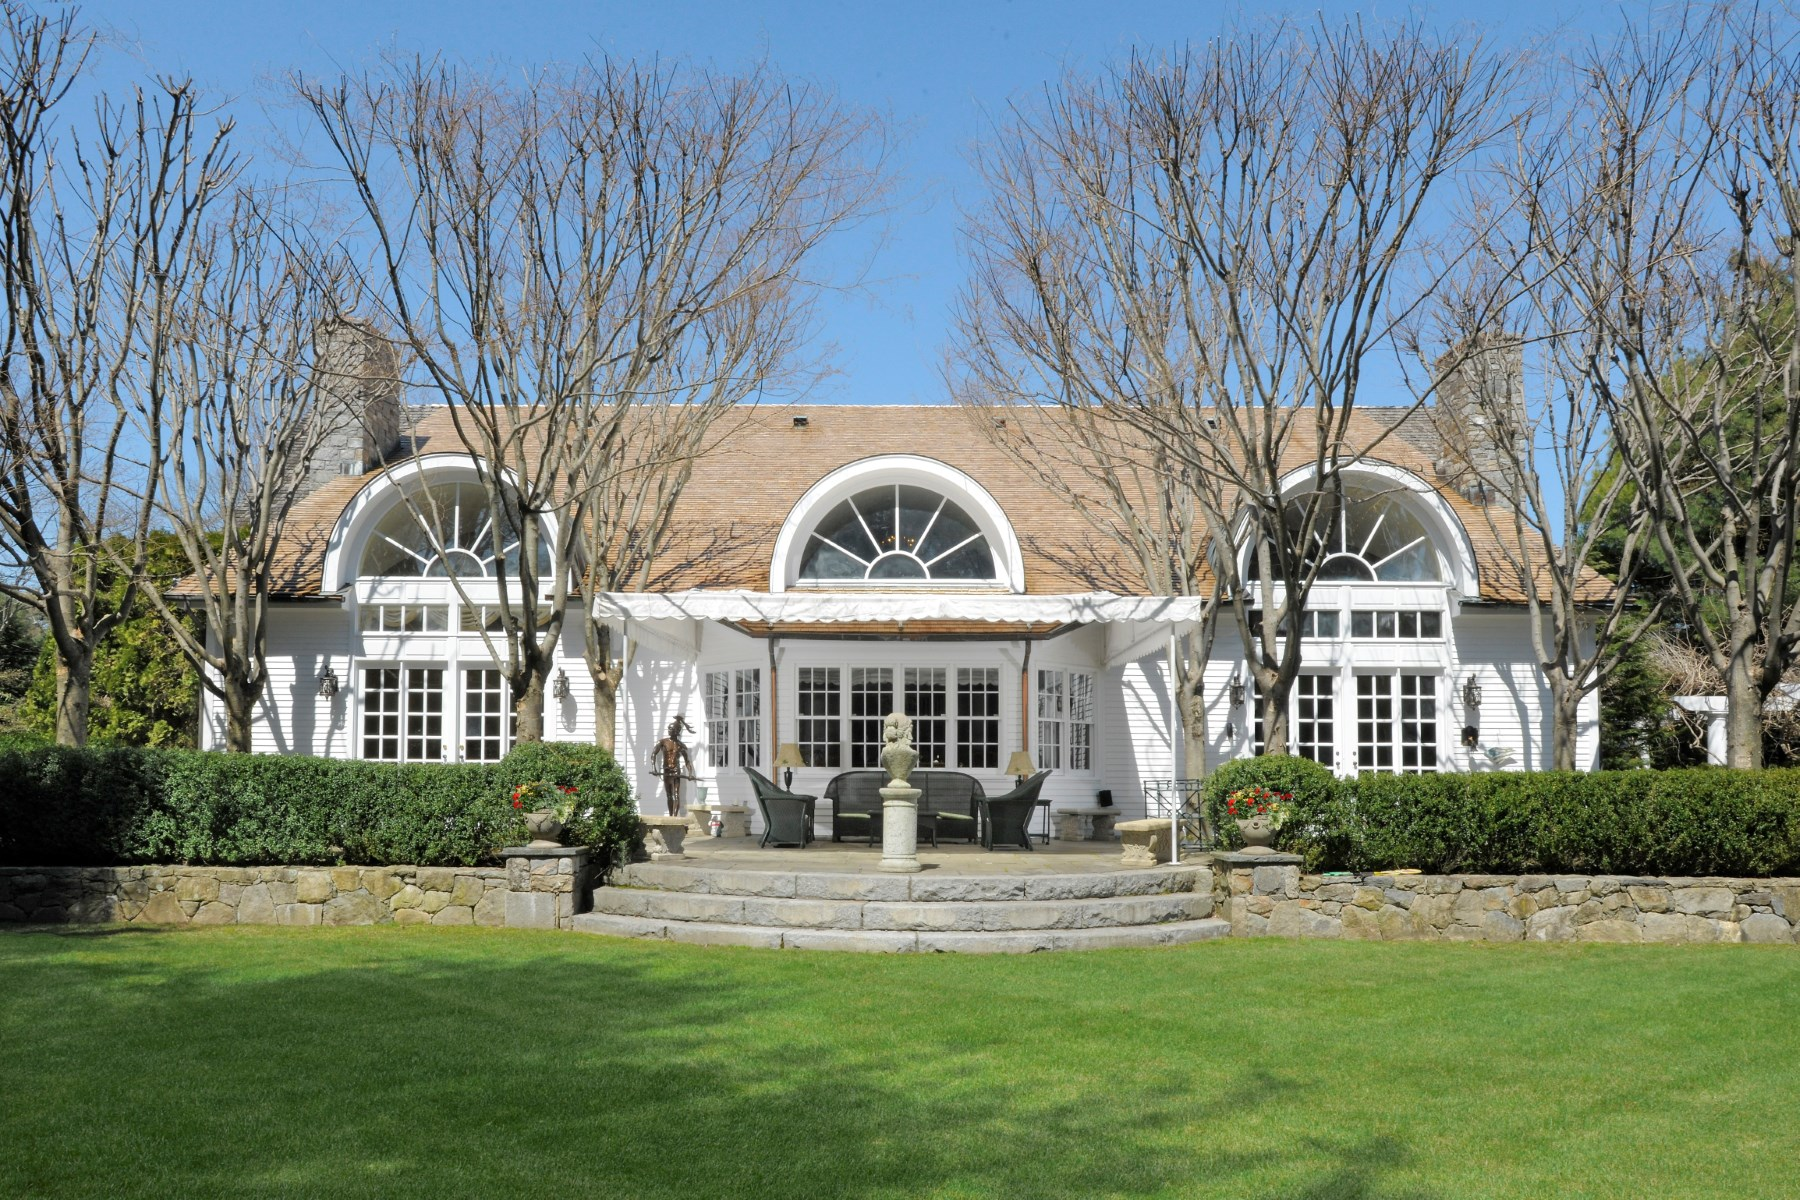 Single Family Home for Sale at 277 Round Hill Road, Greenwich CT Greenwich, Connecticut, 06831 United States